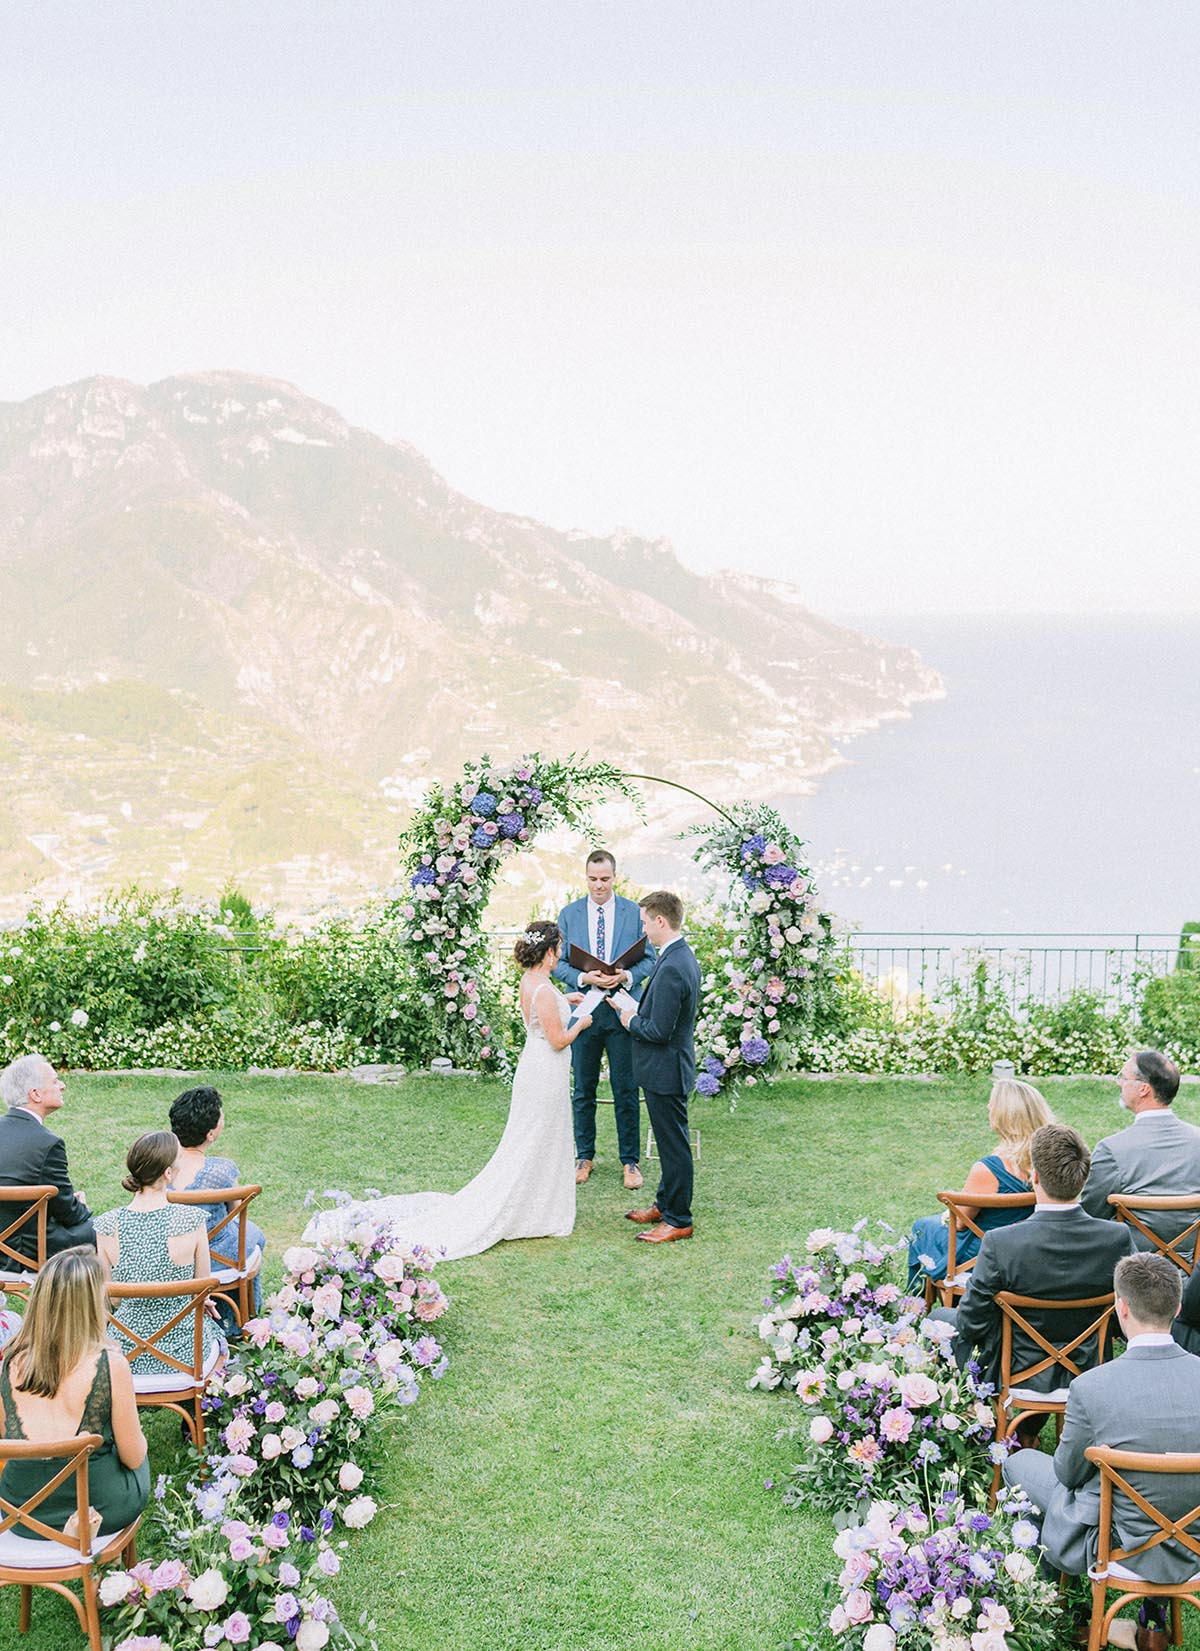 Amalfi-Coast-garden-wedding-with-sea-view-and-floral-wreath